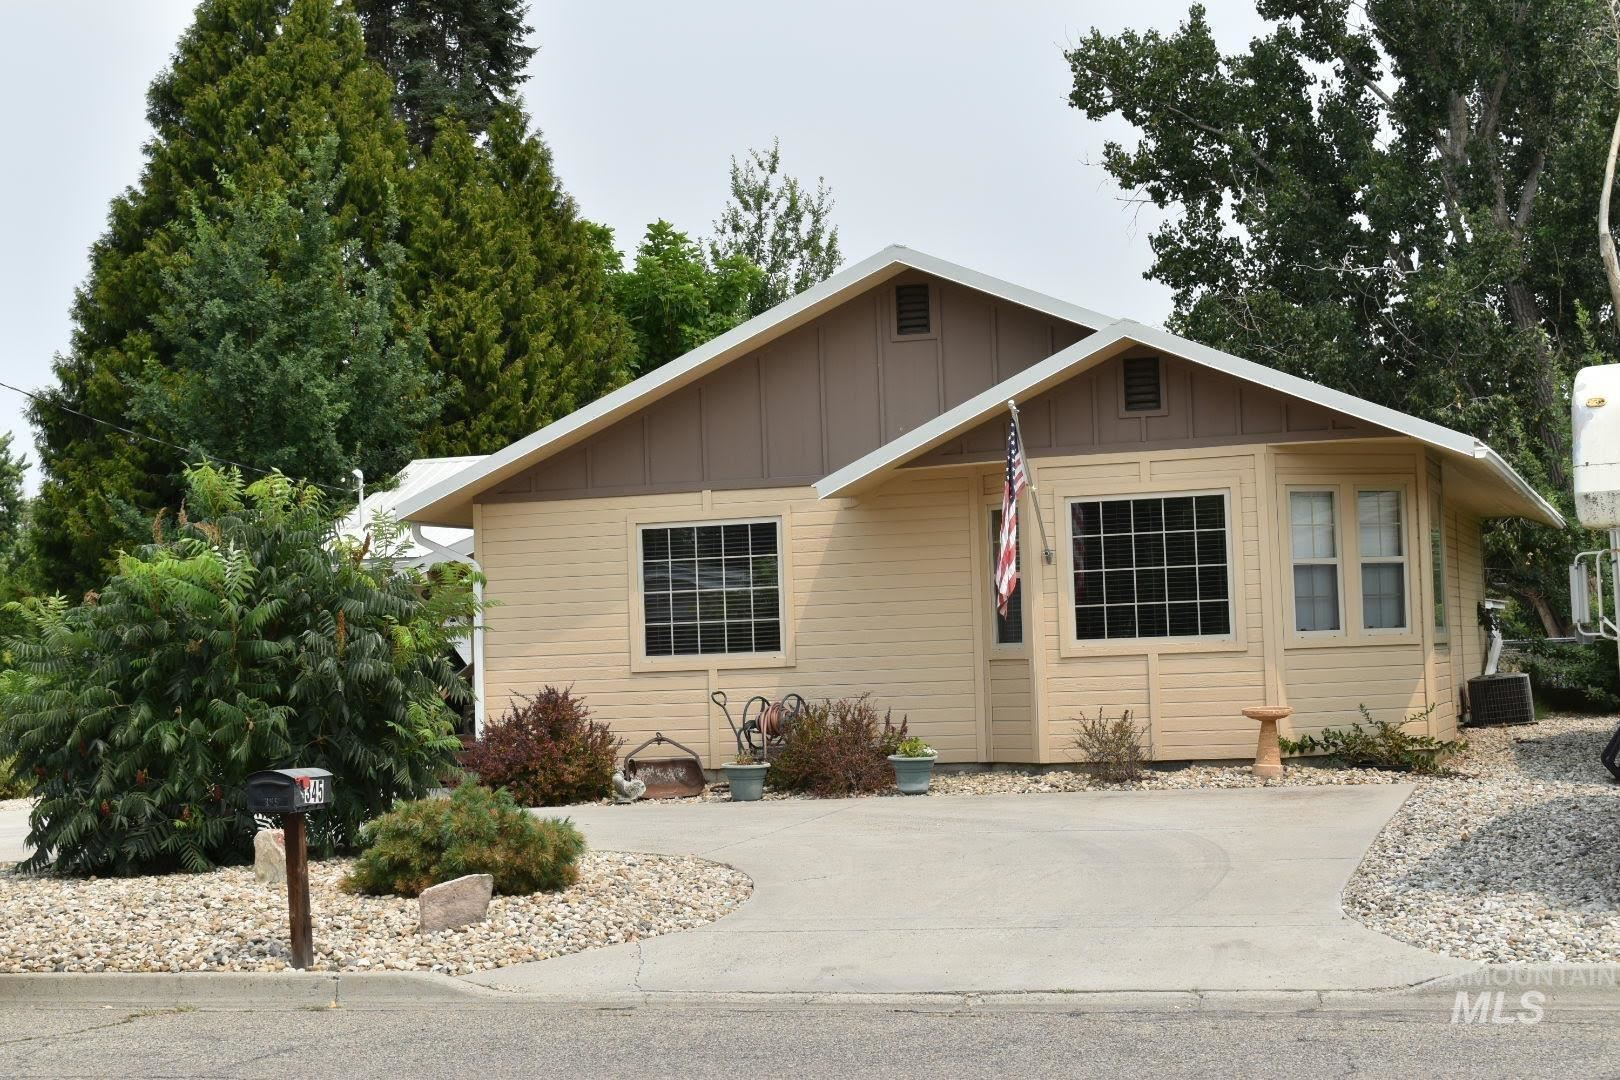 345 S 12th St., Payette, ID 83661 - MLS#: 98812180